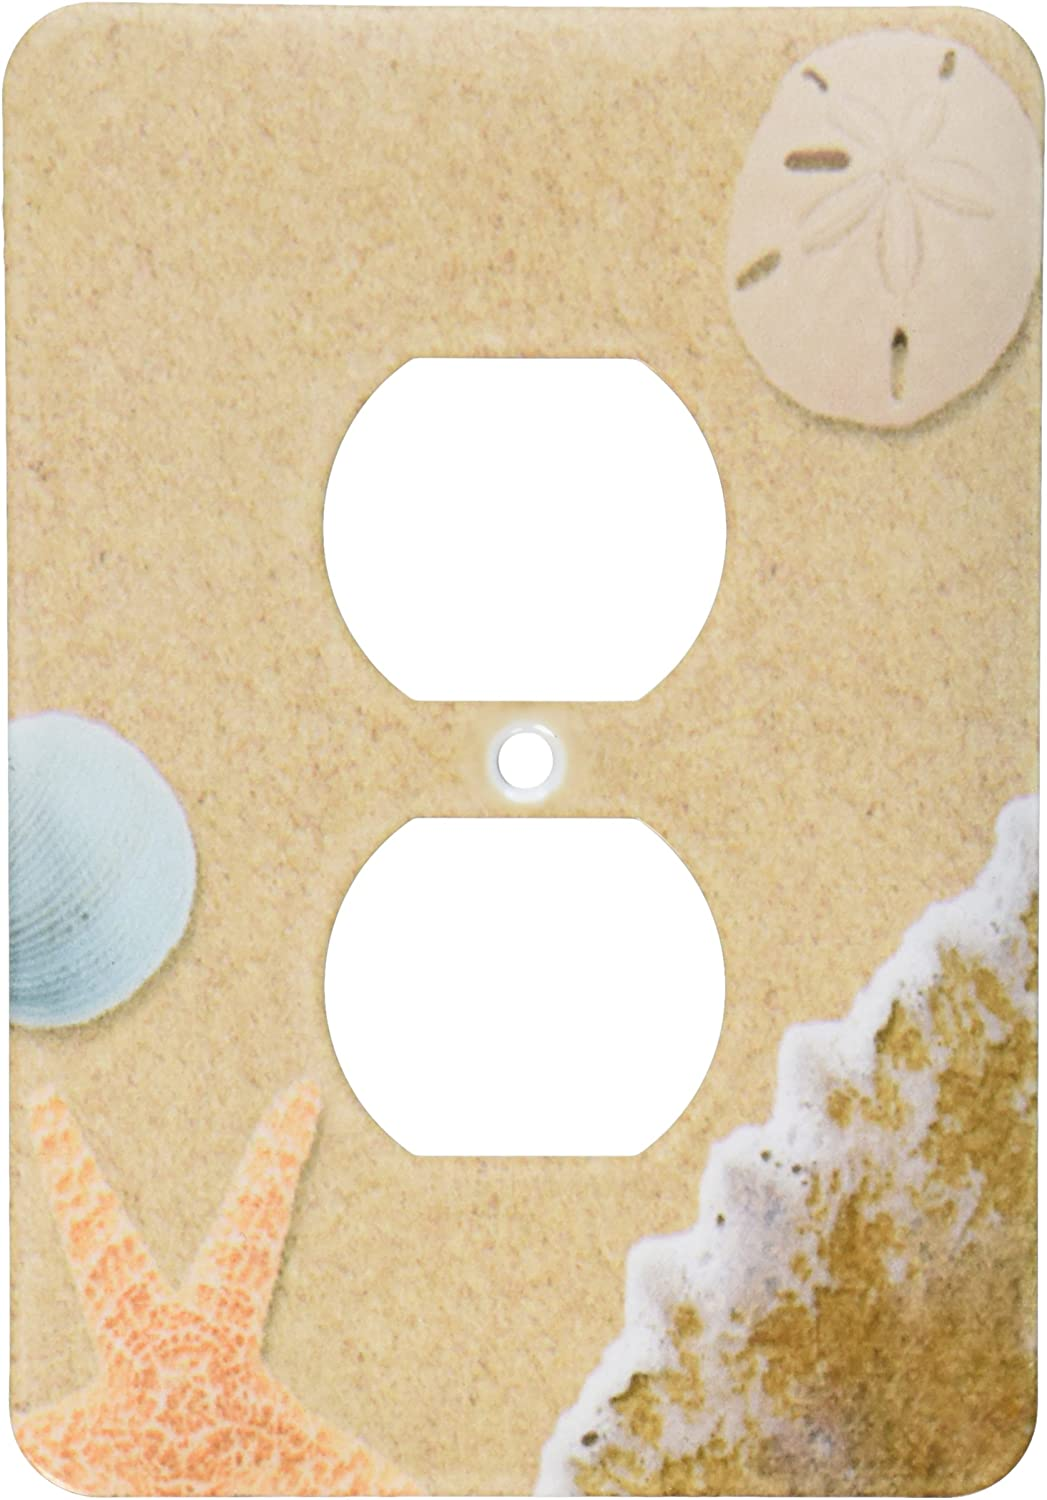 3dRose lsp_172139_6 Sandy Beach with Shells - 2 Plug Outlet Cover